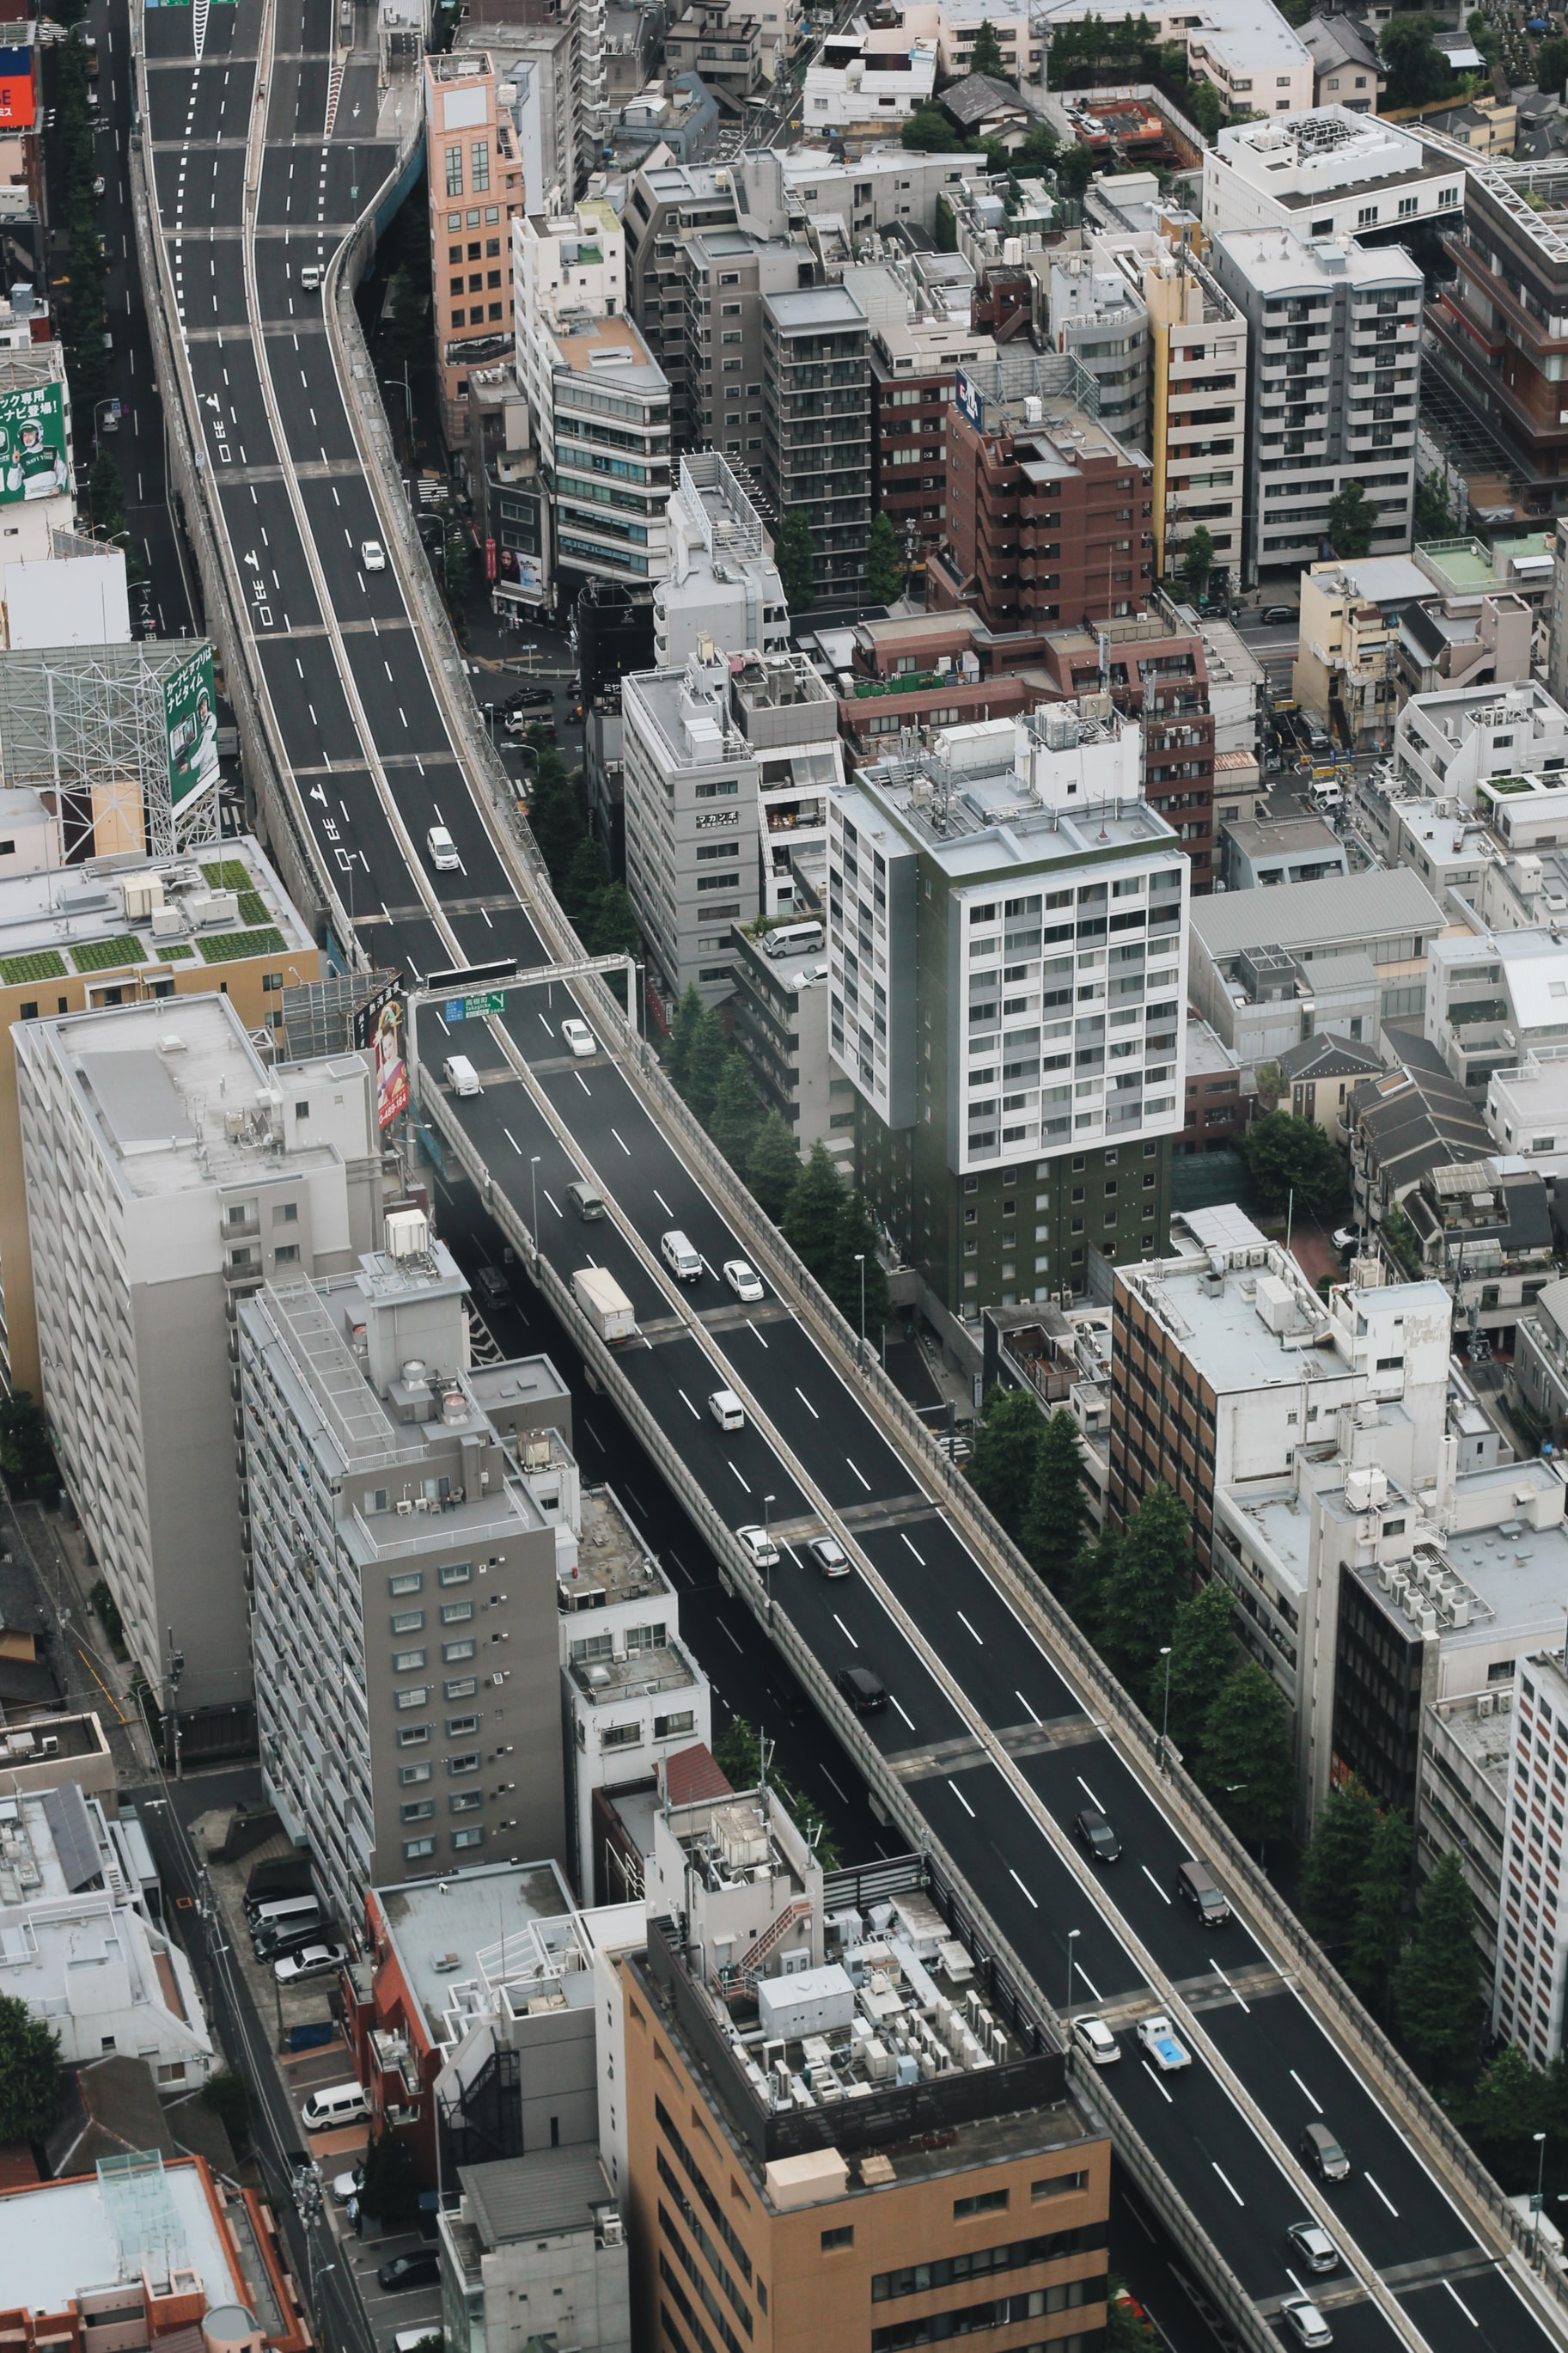 aerial photo of black asphalted road with vehicles on top